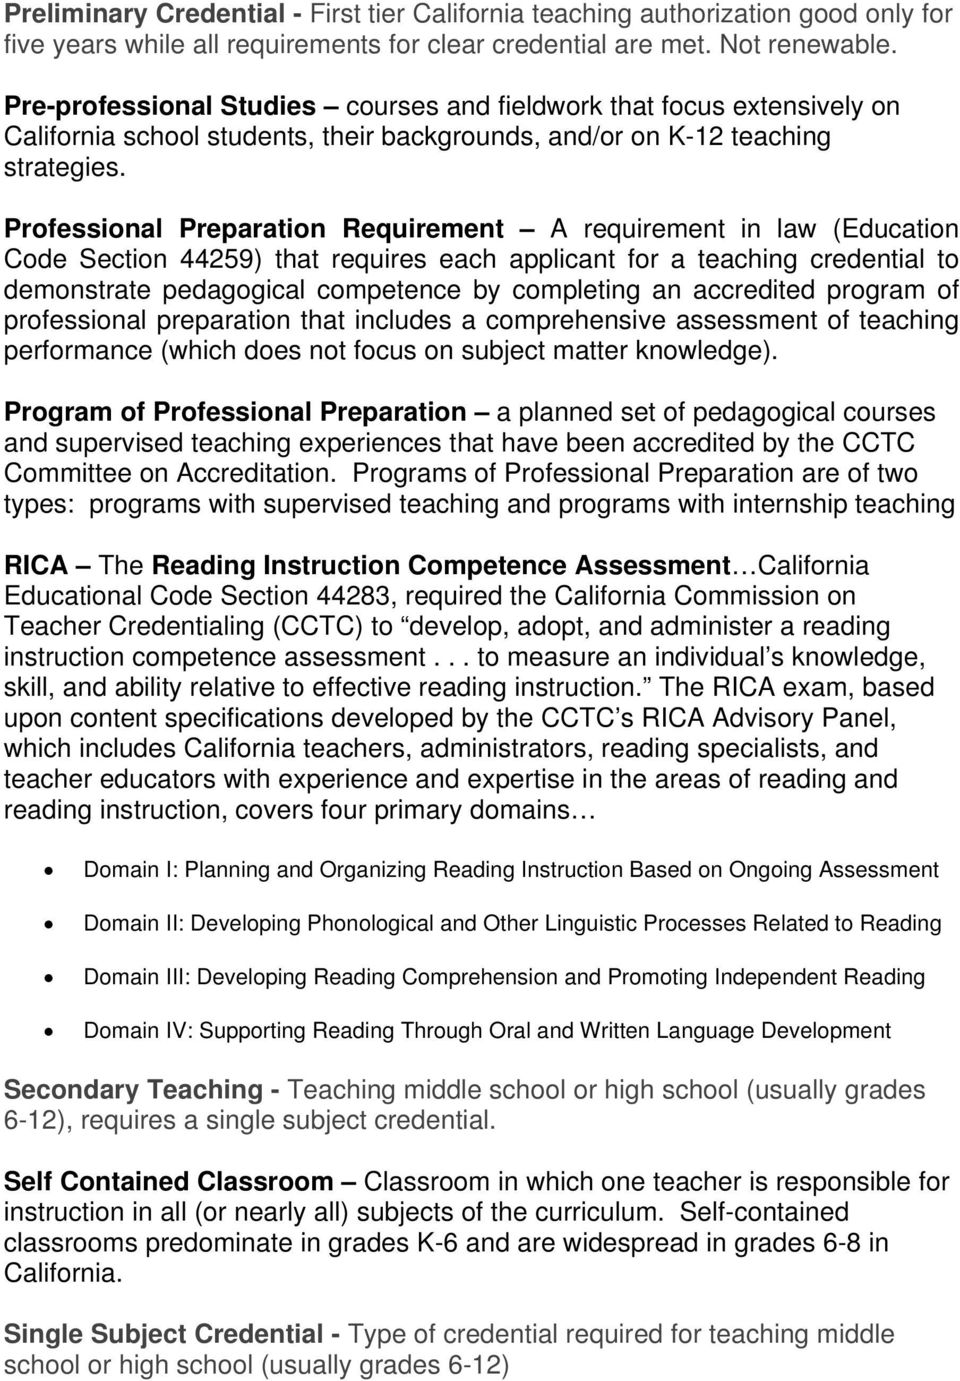 Professional Preparation Requirement A requirement in law (Education Code Section 44259) that requires each applicant for a teaching credential to demonstrate pedagogical competence by completing an